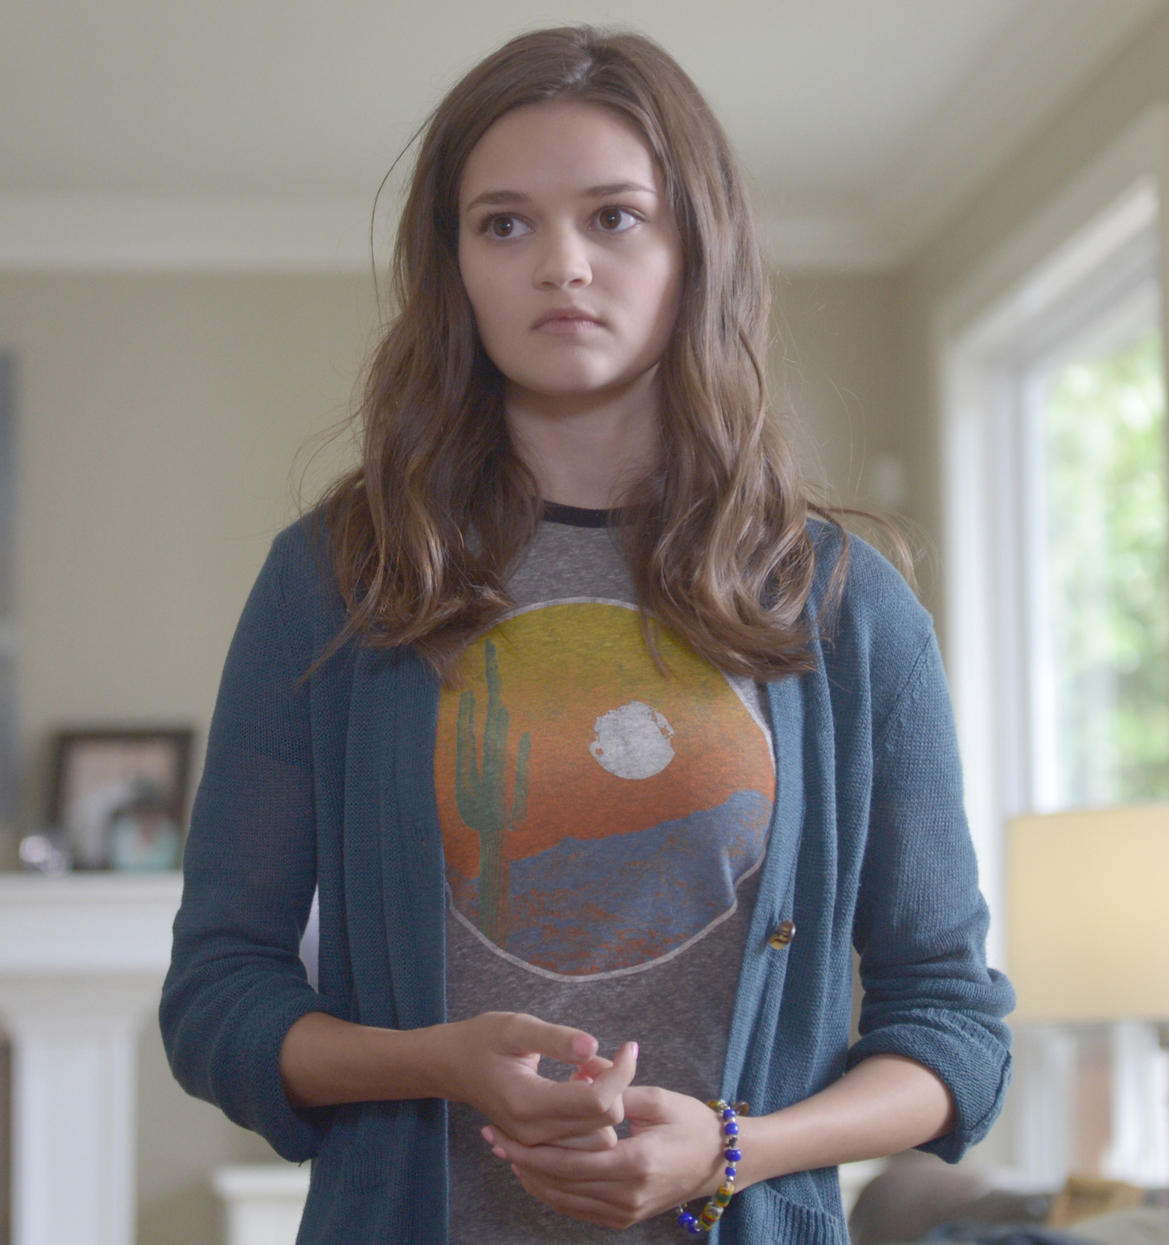 Think, Ciara bravo naked in the shower apologise, but